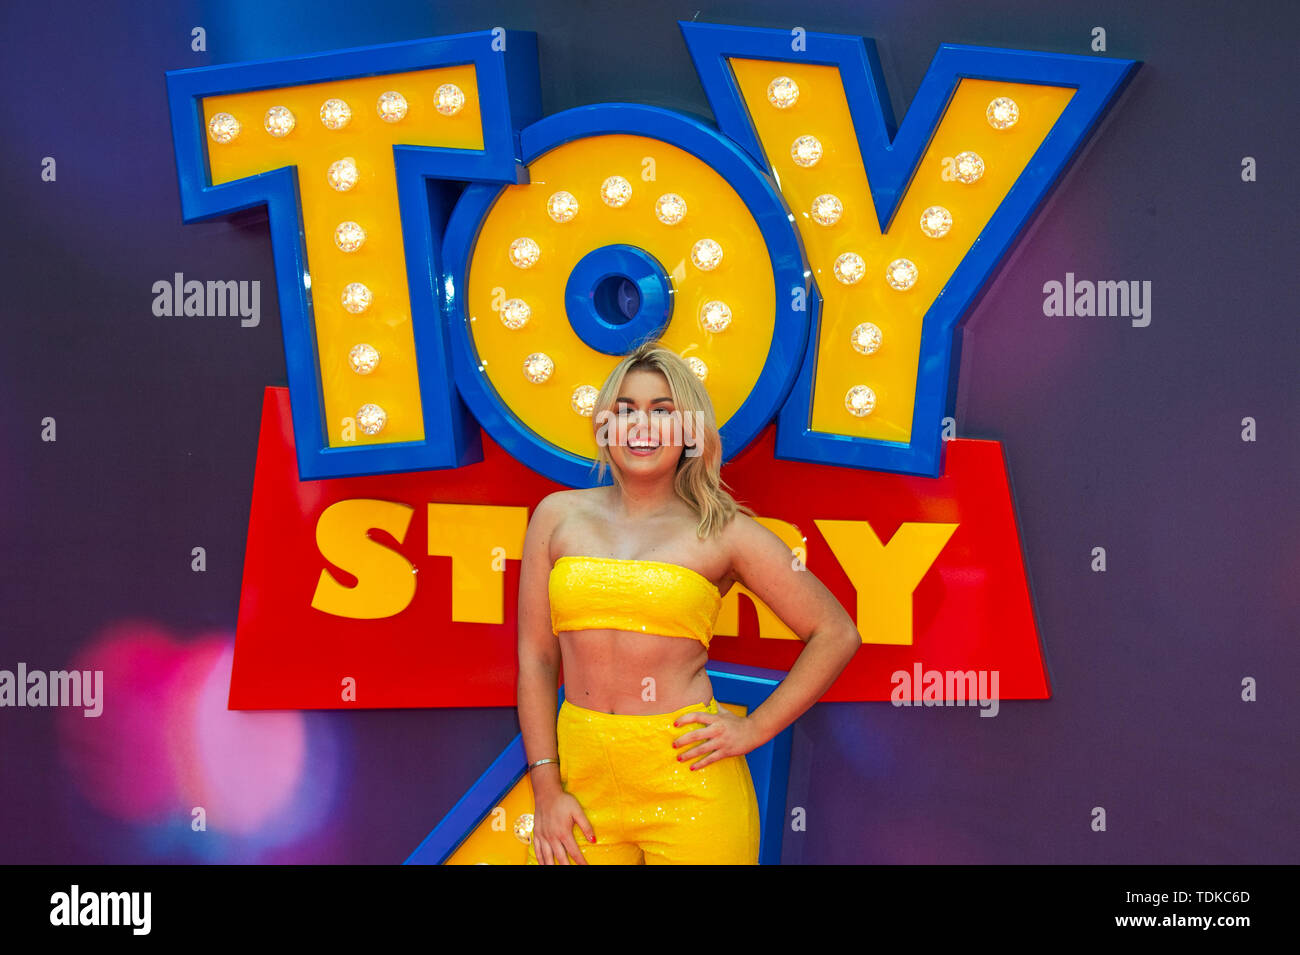 London, United Kingdom. 16 June 2019. Tallia Storm attends the European Premiere of 'Toy Story 4' held at the Odeon Luxe, Leicester Square in central London. Credit: Peter Manning/Alamy Live News - Stock Image